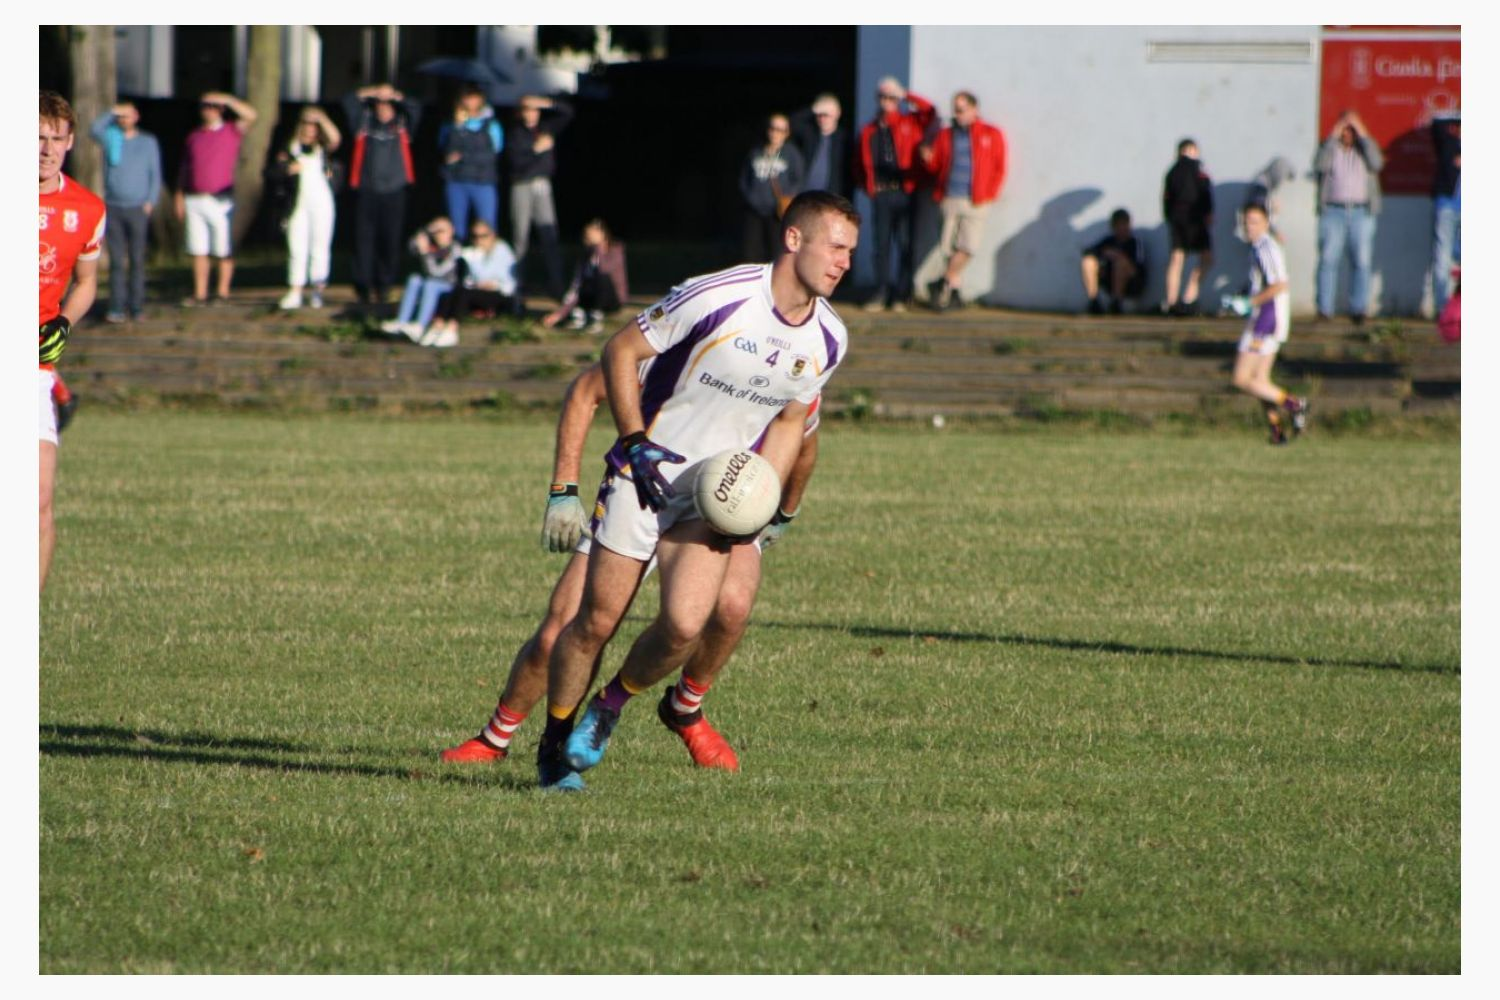 AFL1 Cuala Versus Kilmacud Crokes Saturday July 28th